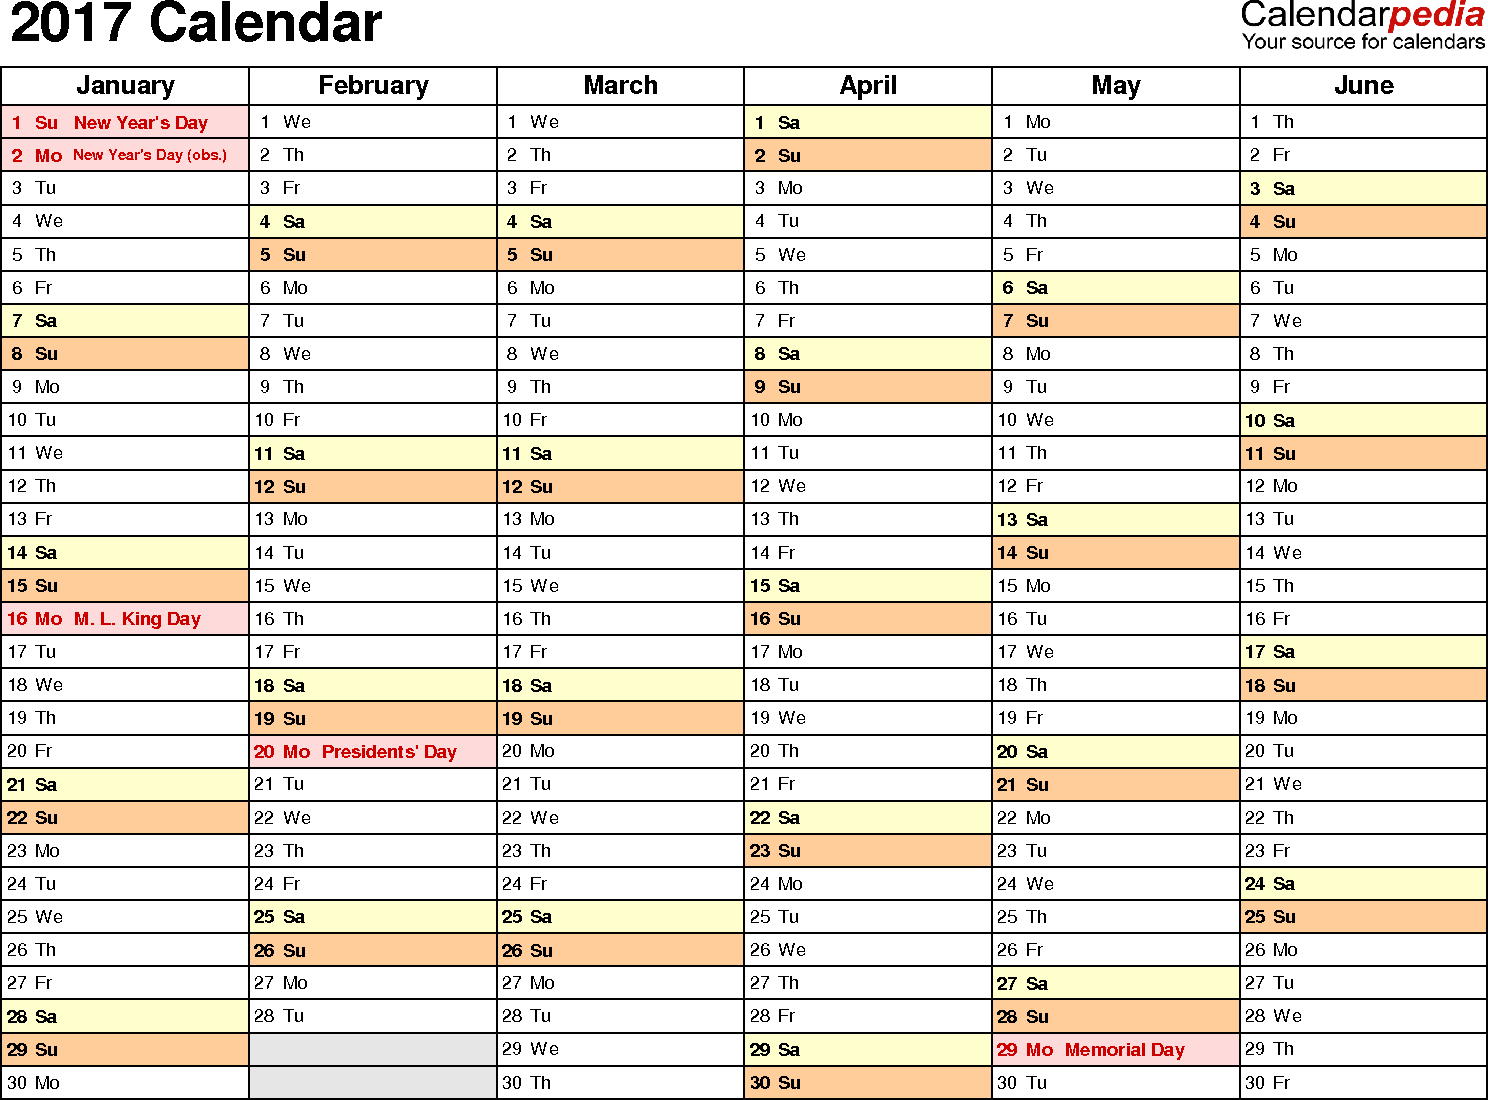 Ediblewildsus  Wonderful  Calendar  Download  Free Printable Excel Templates Xls With Gorgeous Template   Calendar For Excel Months Horizontally  Pages Landscape Orientation With Attractive And In Excel Also Excel Merge And Center In Addition Excel  Freeze Panes And How To Change X Axis Values In Excel As Well As How To Find P Value In Excel Additionally Autocomplete Excel From Calendarpediacom With Ediblewildsus  Gorgeous  Calendar  Download  Free Printable Excel Templates Xls With Attractive Template   Calendar For Excel Months Horizontally  Pages Landscape Orientation And Wonderful And In Excel Also Excel Merge And Center In Addition Excel  Freeze Panes From Calendarpediacom